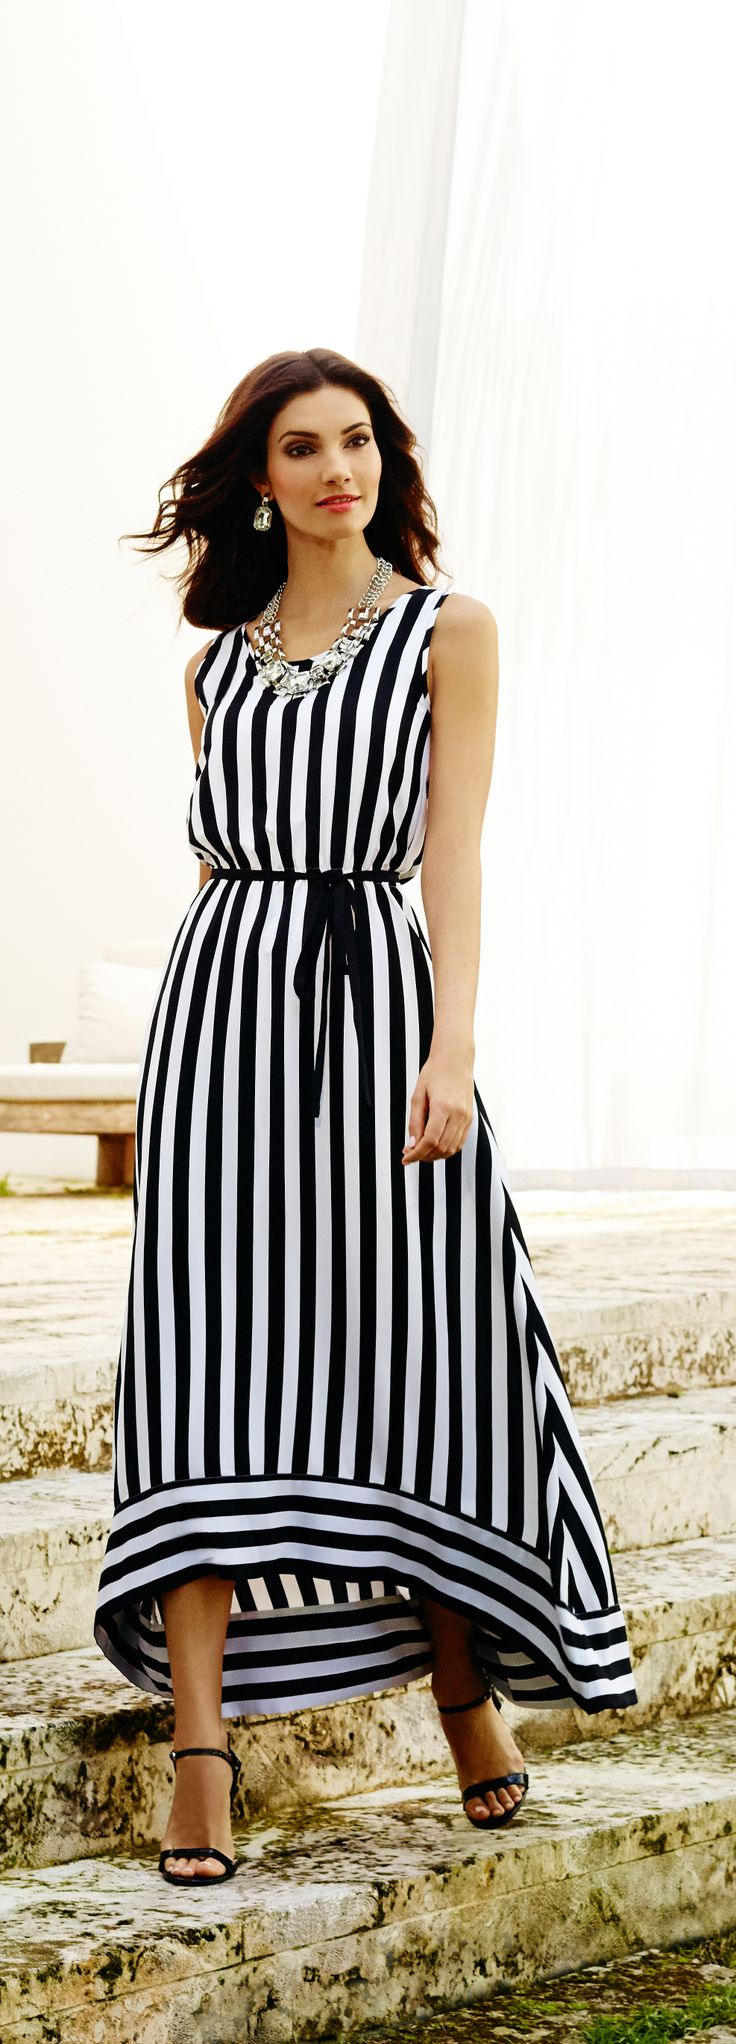 Black & white (and chic all over): Graphic stripes give the flowy high-low dress a bold makeover.